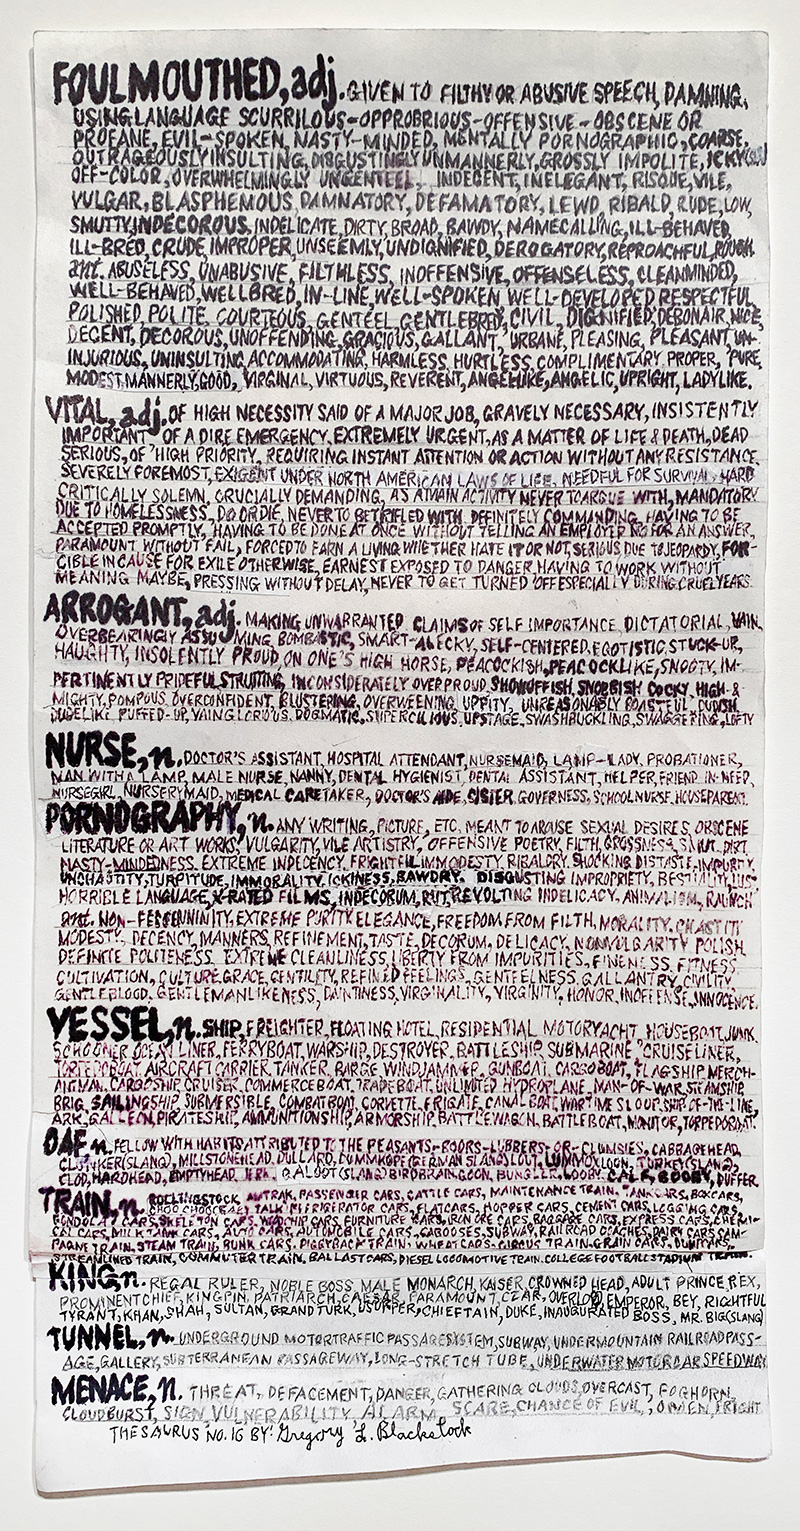 THESAURUS #16 (FOULMOUTHED), 2020 Ink and permanent marker on paper